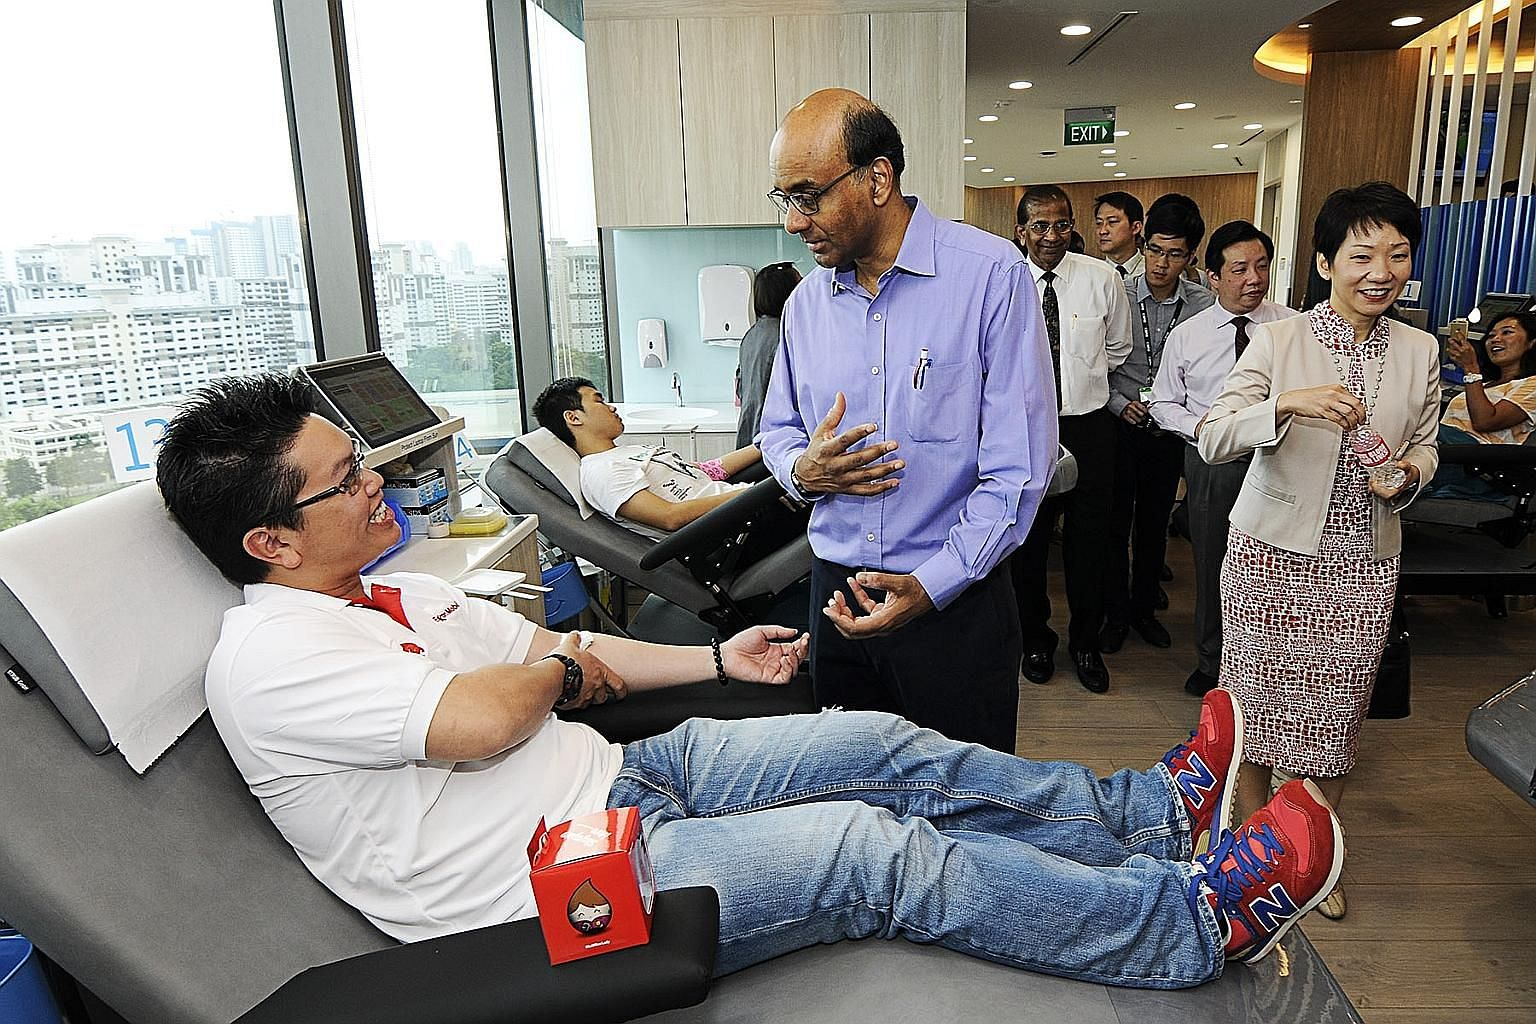 Deputy Prime Minister Tharman Shanmugaratnam, accompanied by Minister in the Prime Minister's Office Grace Fu, meeting blood donors at the opening of Bloodbank@Westgate Tower yesterday.